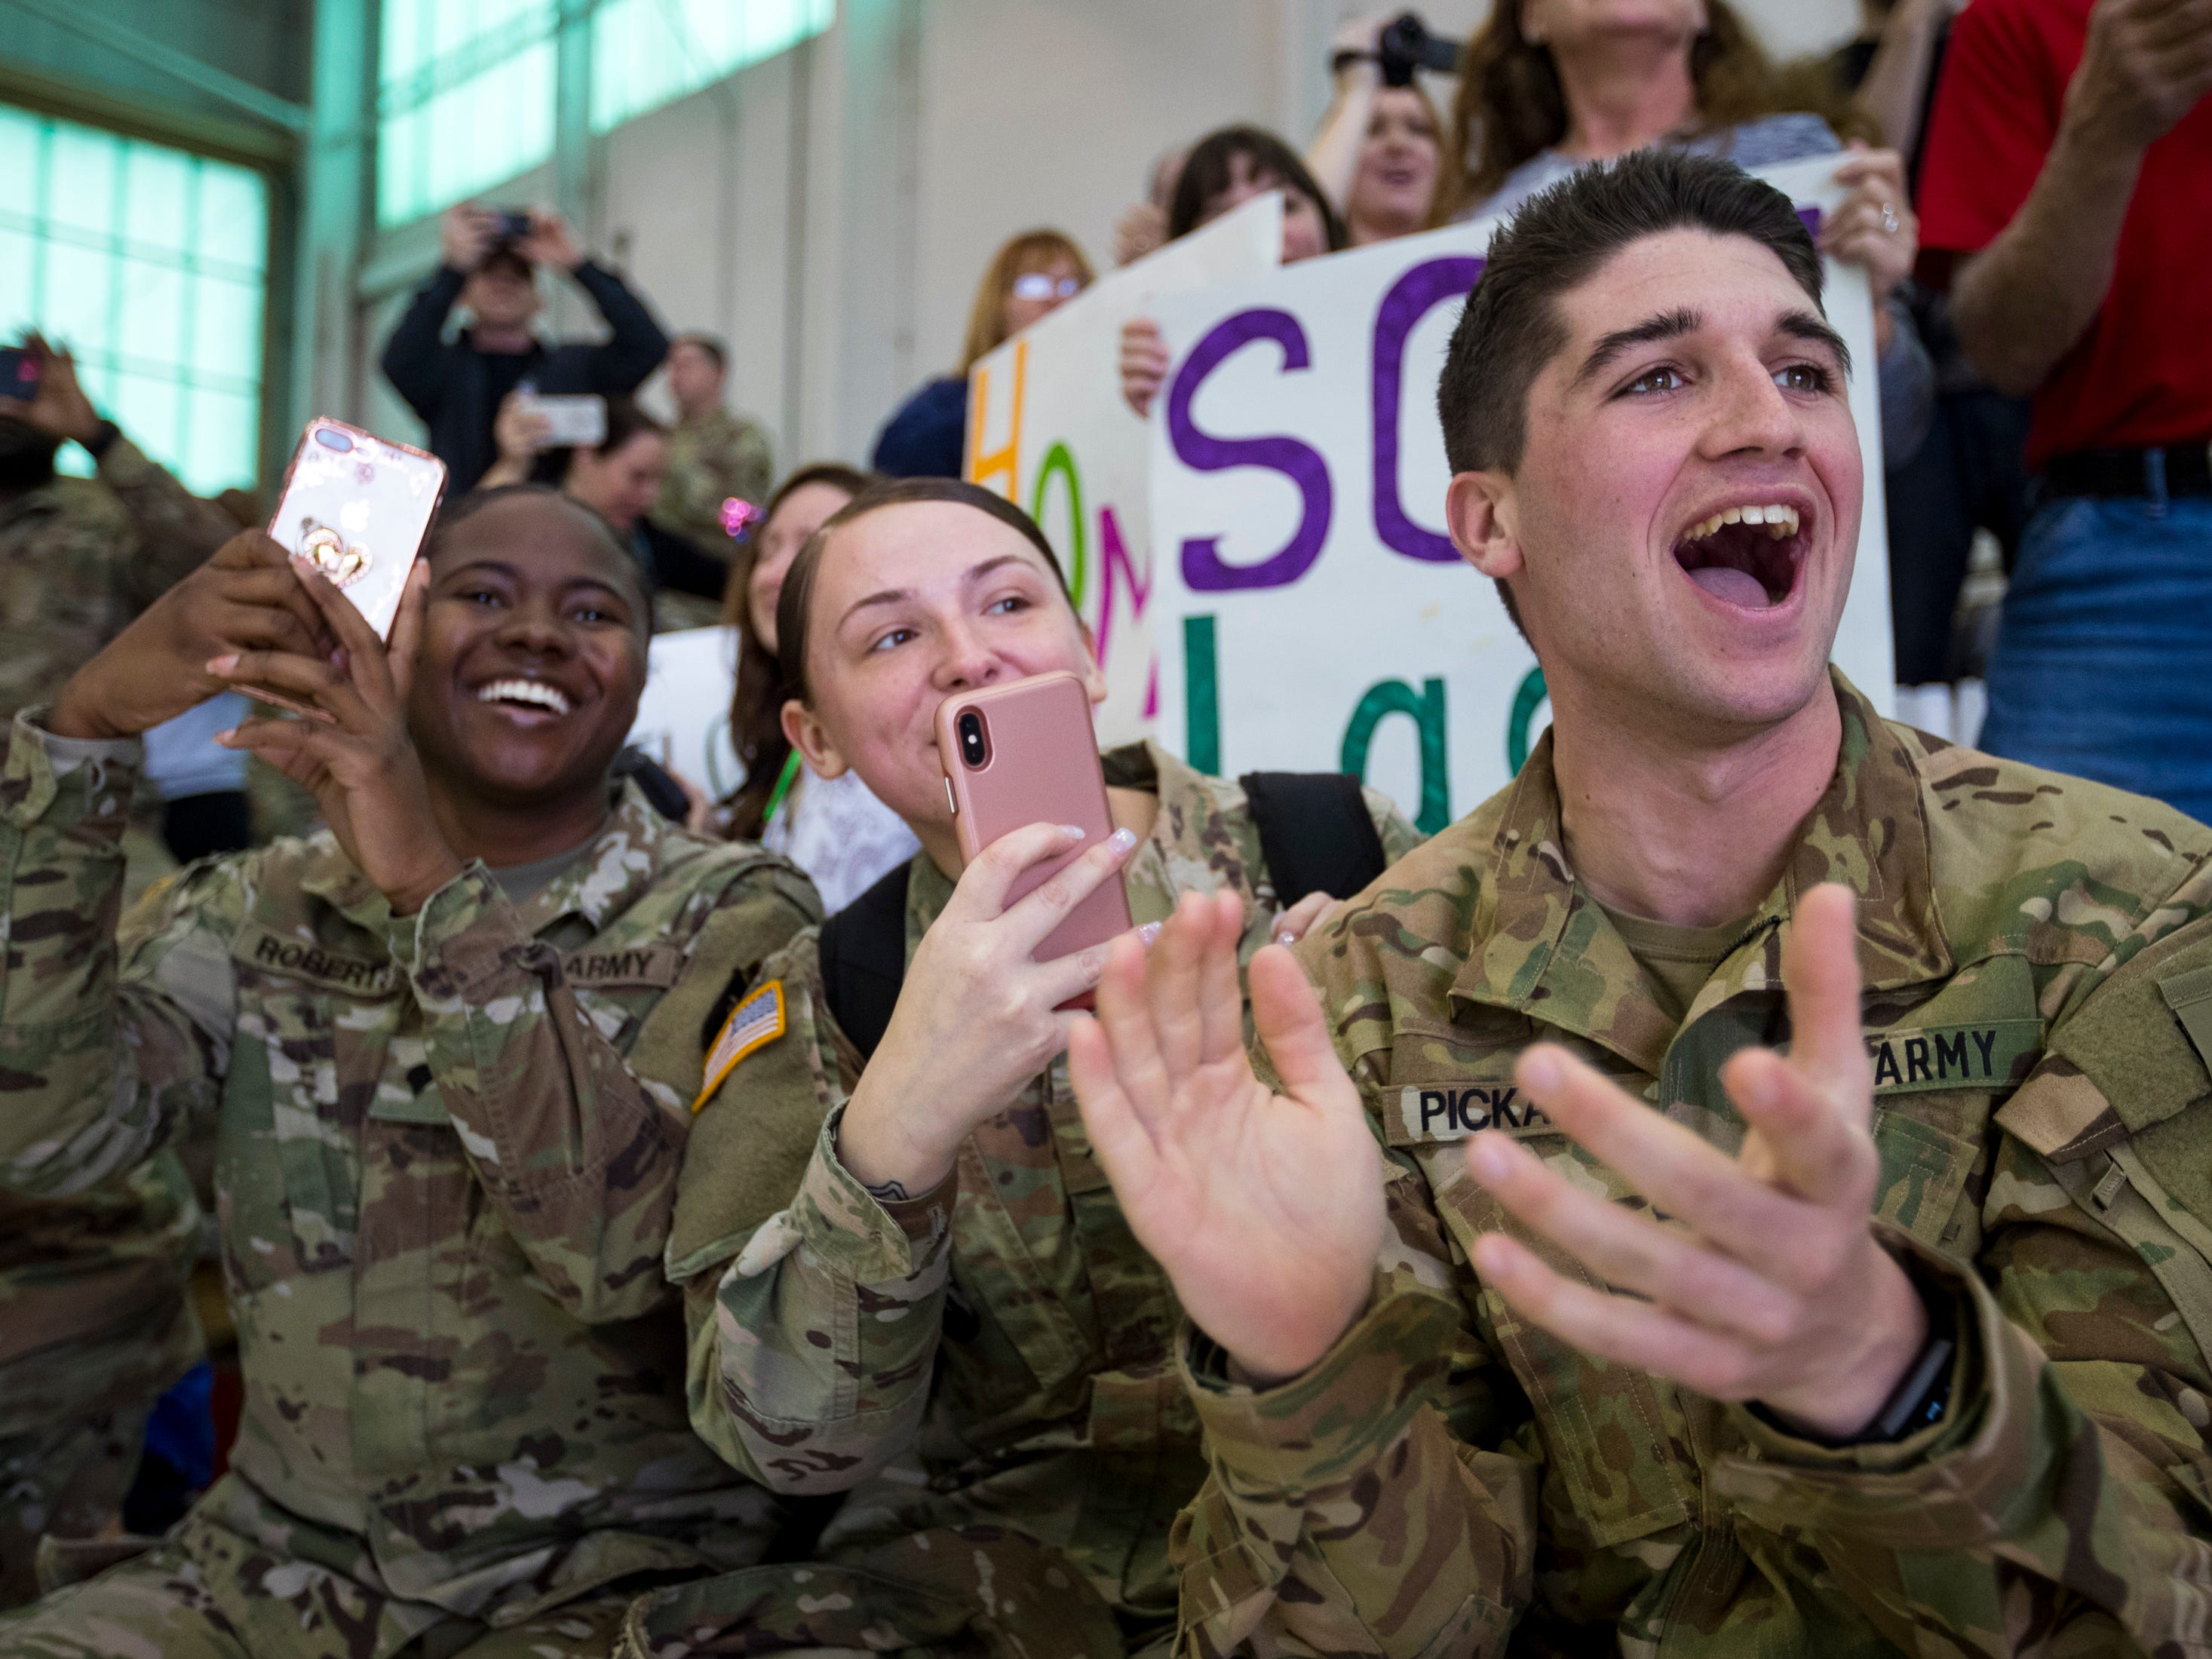 Specialist Ethan Pickard cheers as members of the 101st Combat Aviation Brigade enter a welcome home ceremony at Fort Campbell in Clarksville on Tuesday, Feb. 5, 2019. The soldiers were returning from a nine-month deployment to Afghanistan.